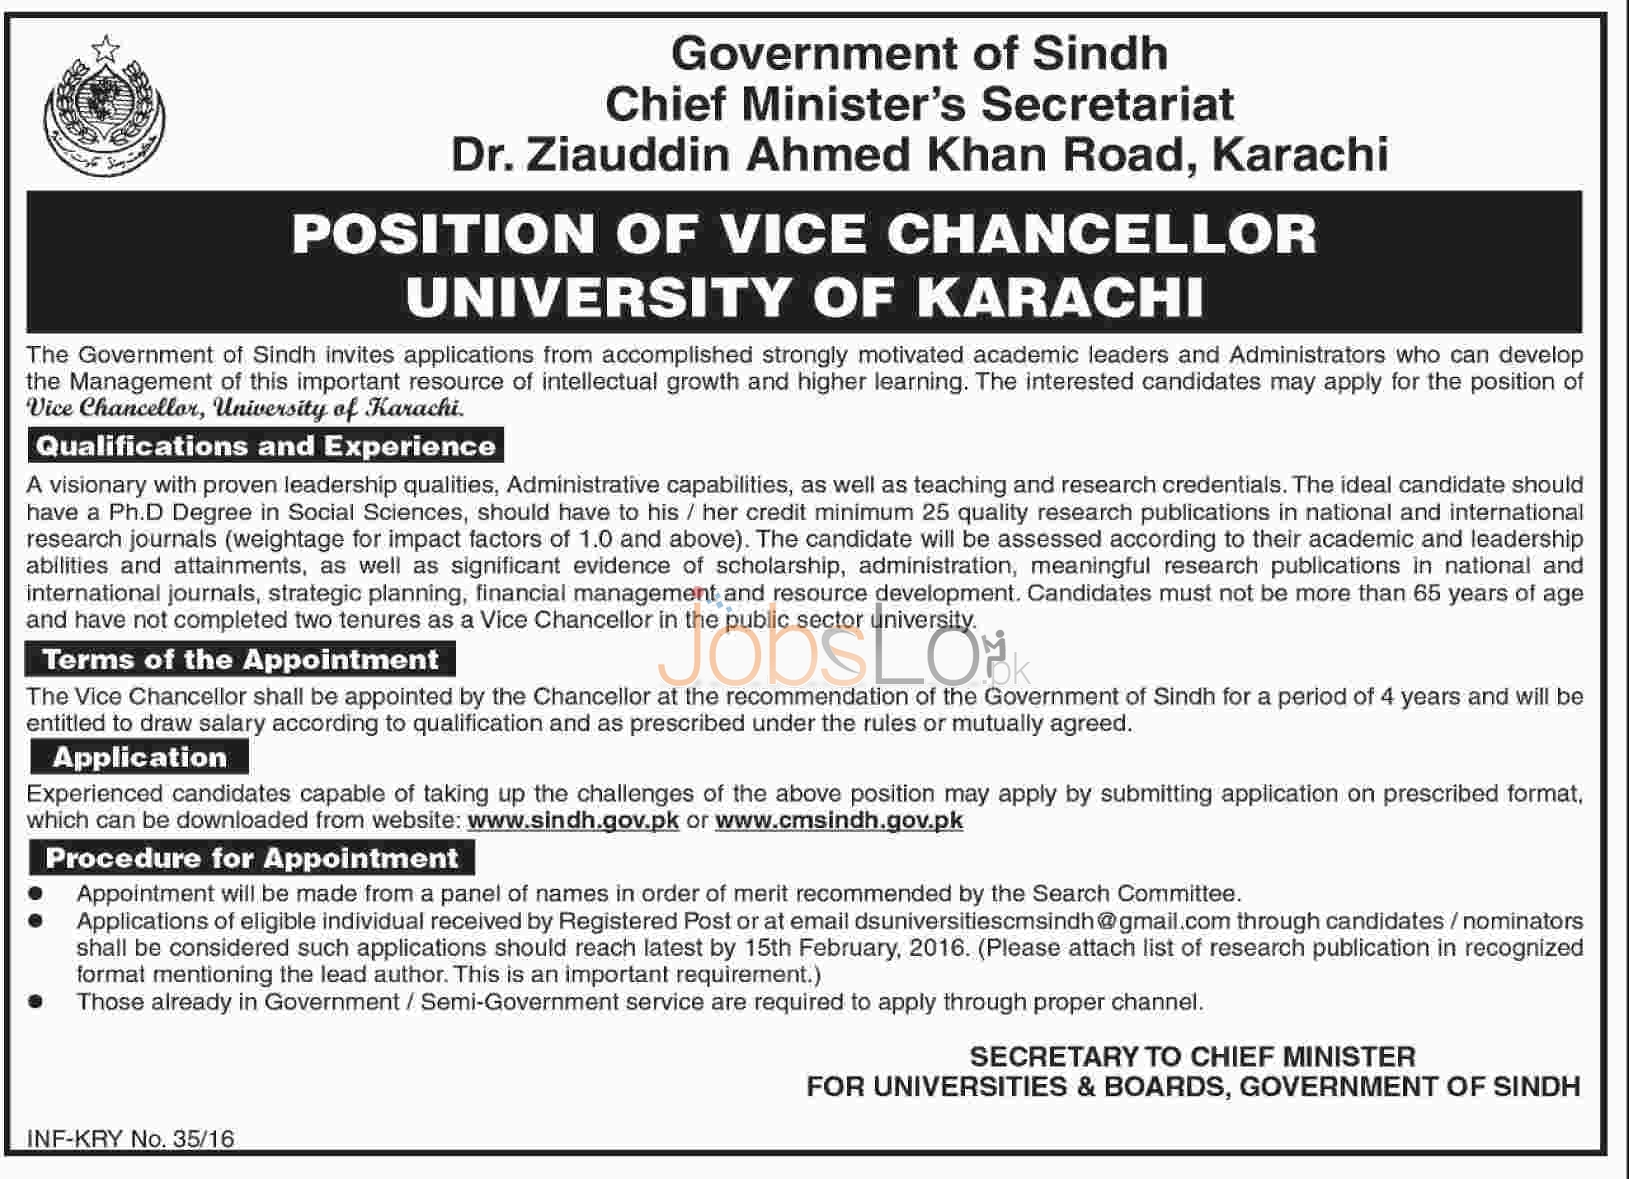 Situations Vacant for Vice Chancellor in University of Karachi 27th Jan 2016